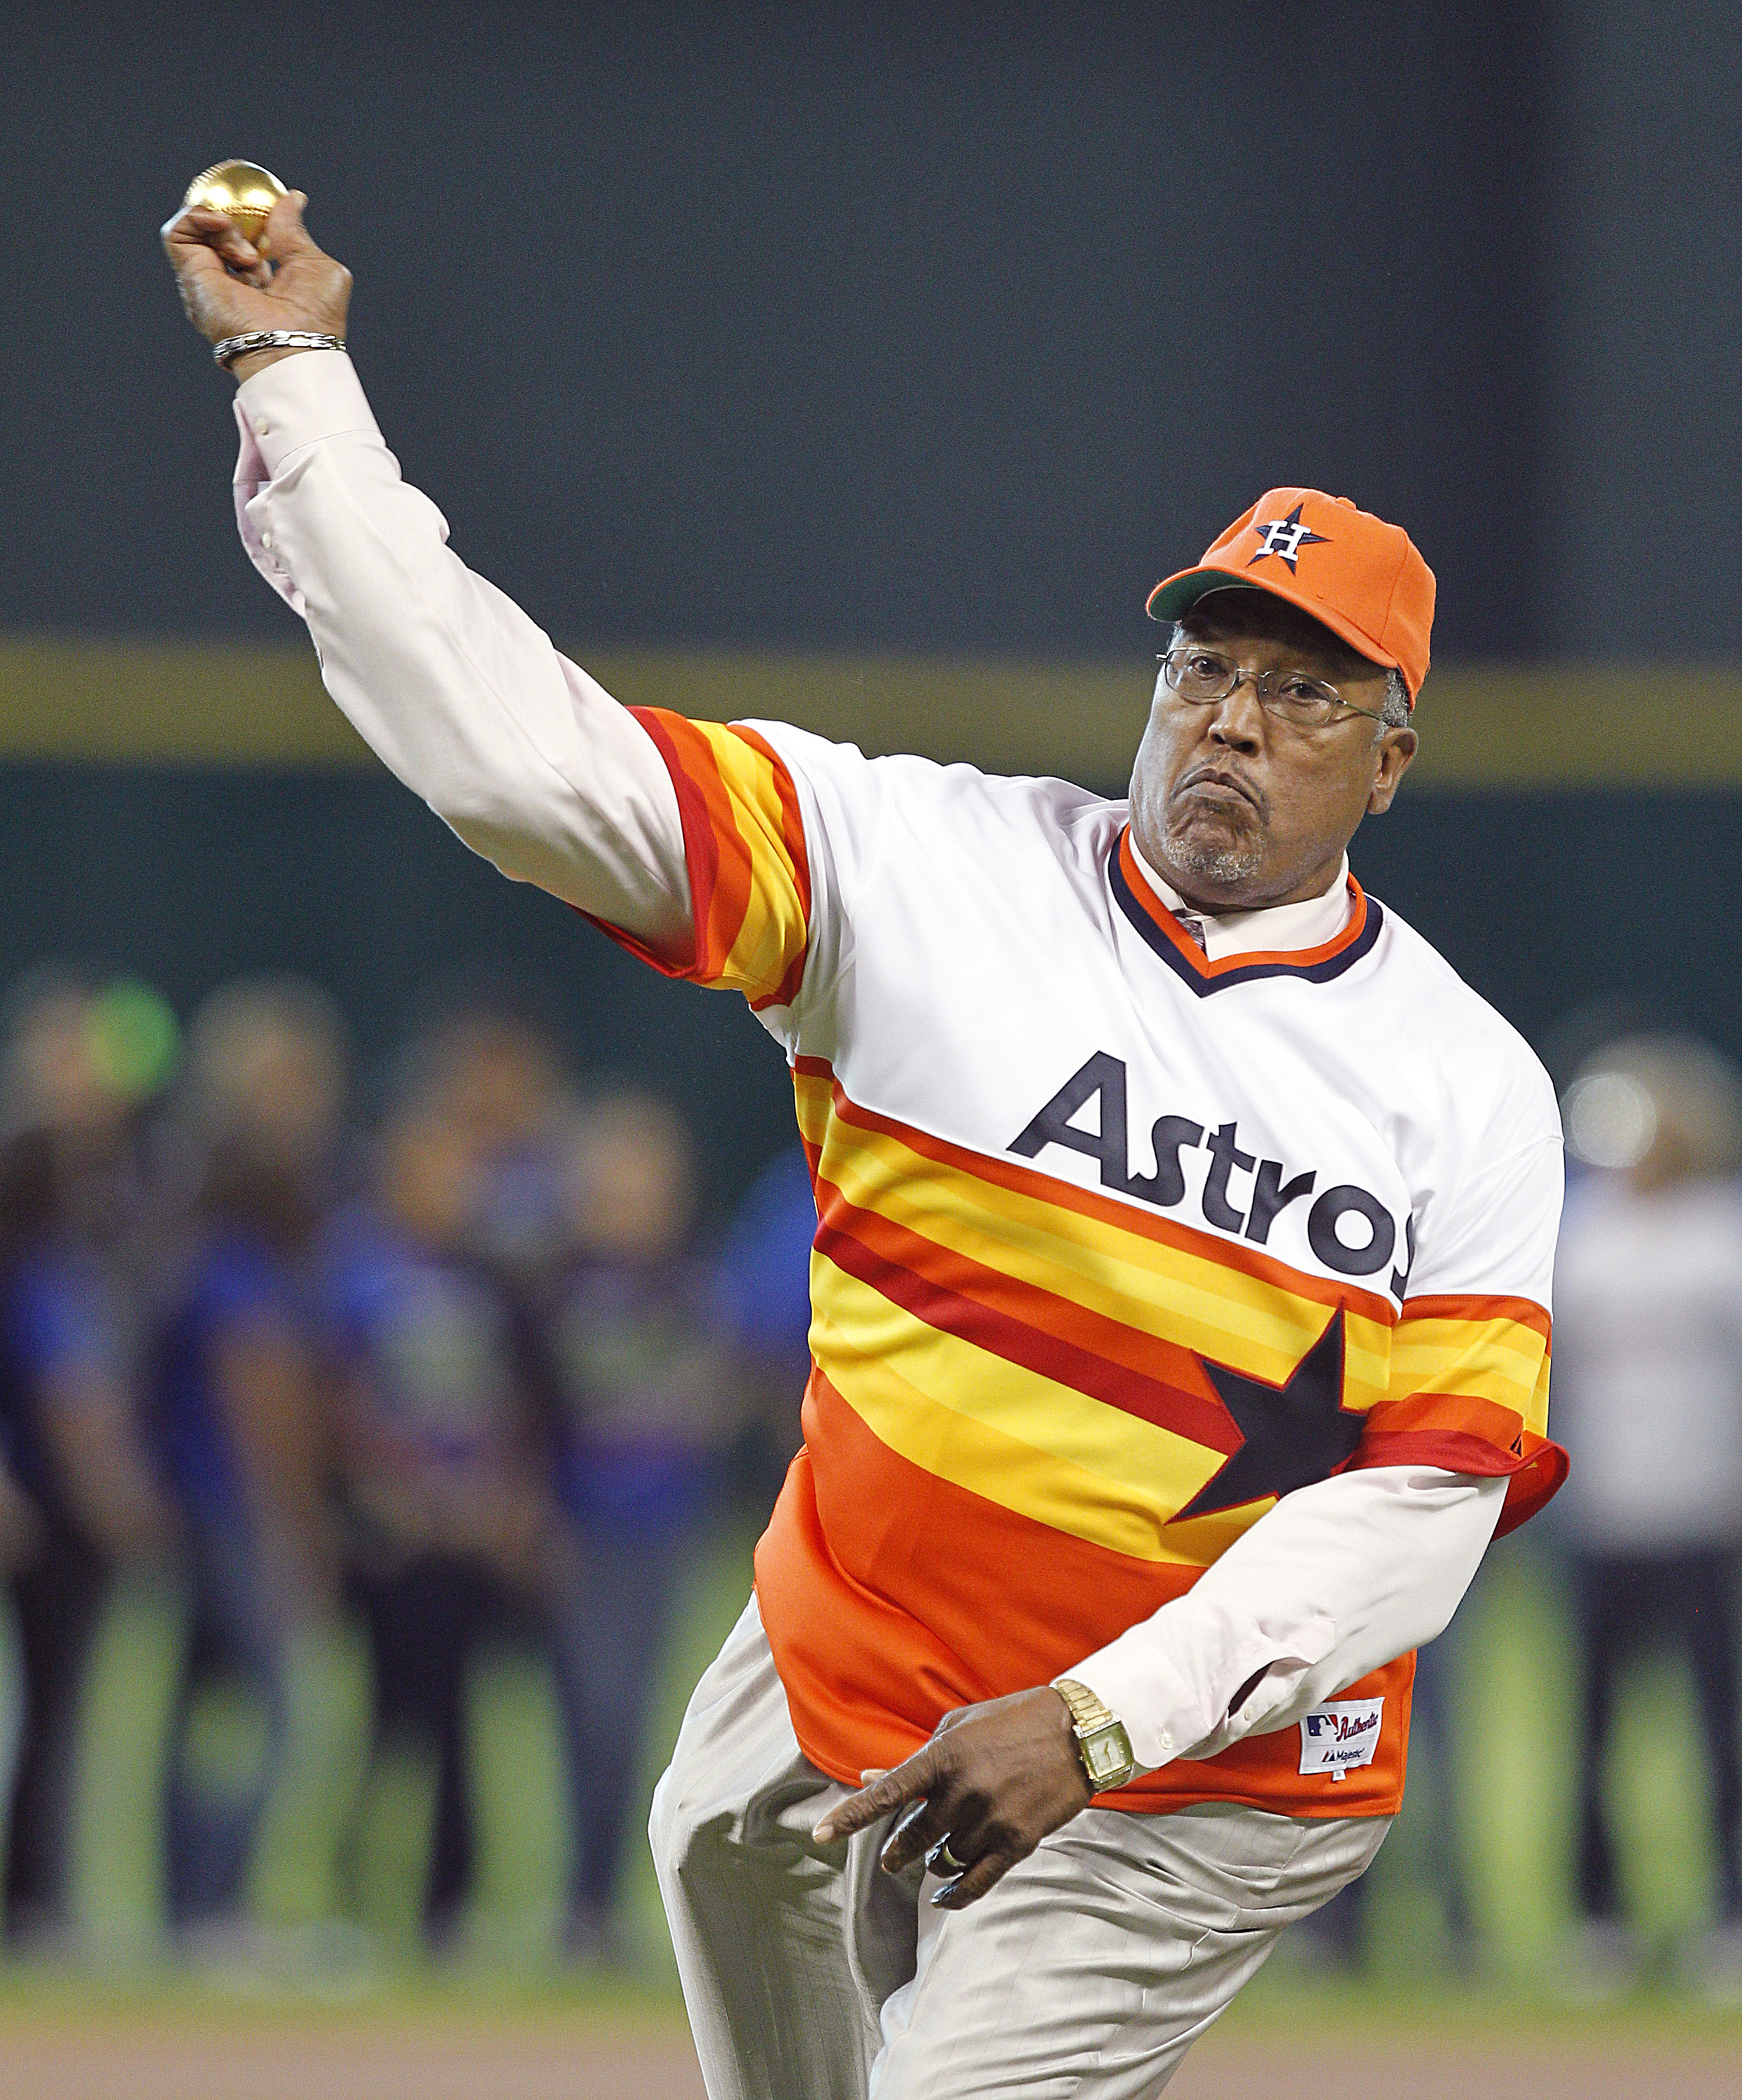 J.R. Richard throwing out the first pitch in 2002.  His 1979 season was one of the most dominant ever thrown by an Astros pitcher.